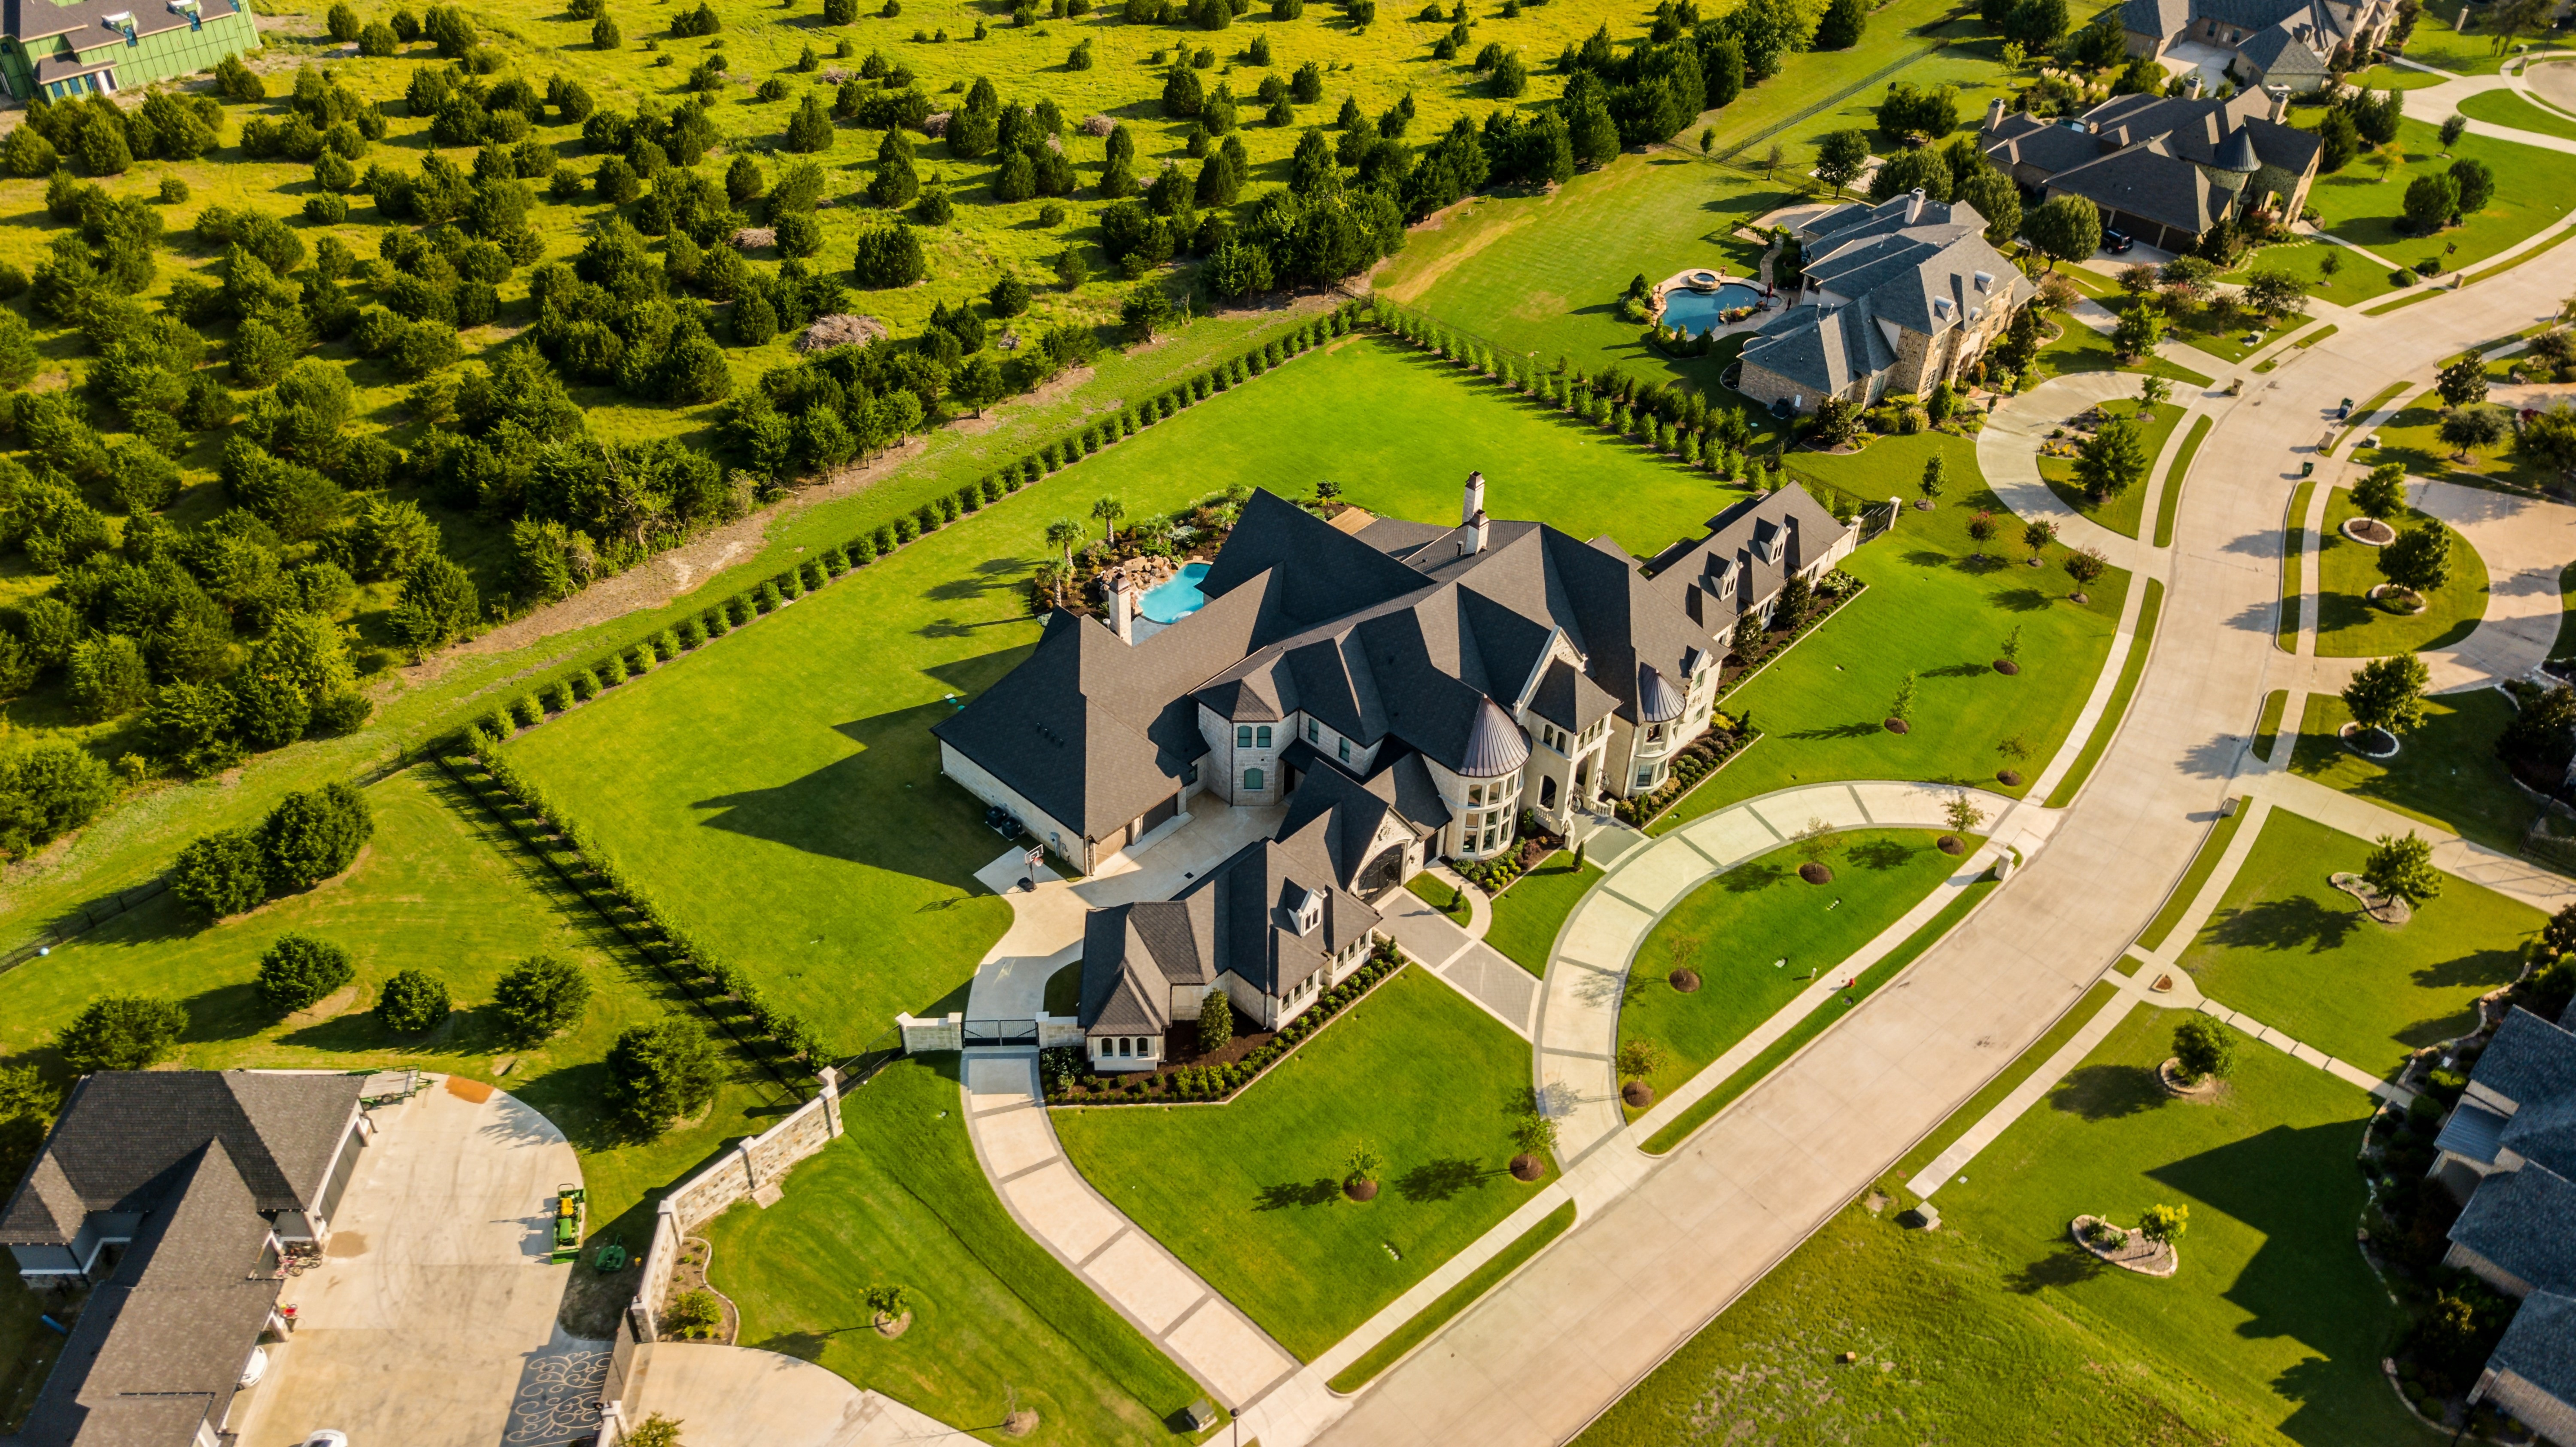 Aerial view of a large luxury European inspired home